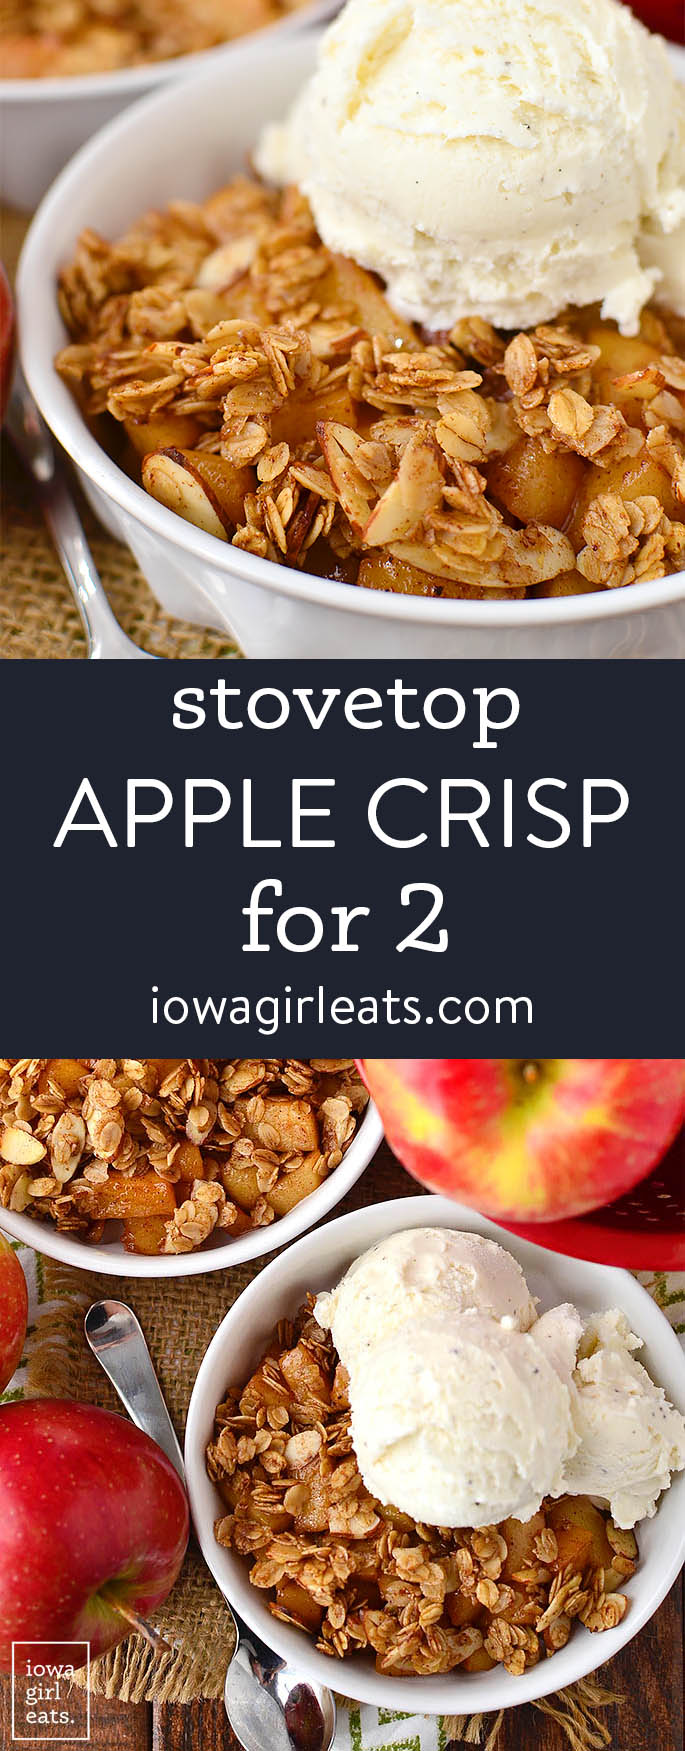 photo collage for stovetop apple crisp